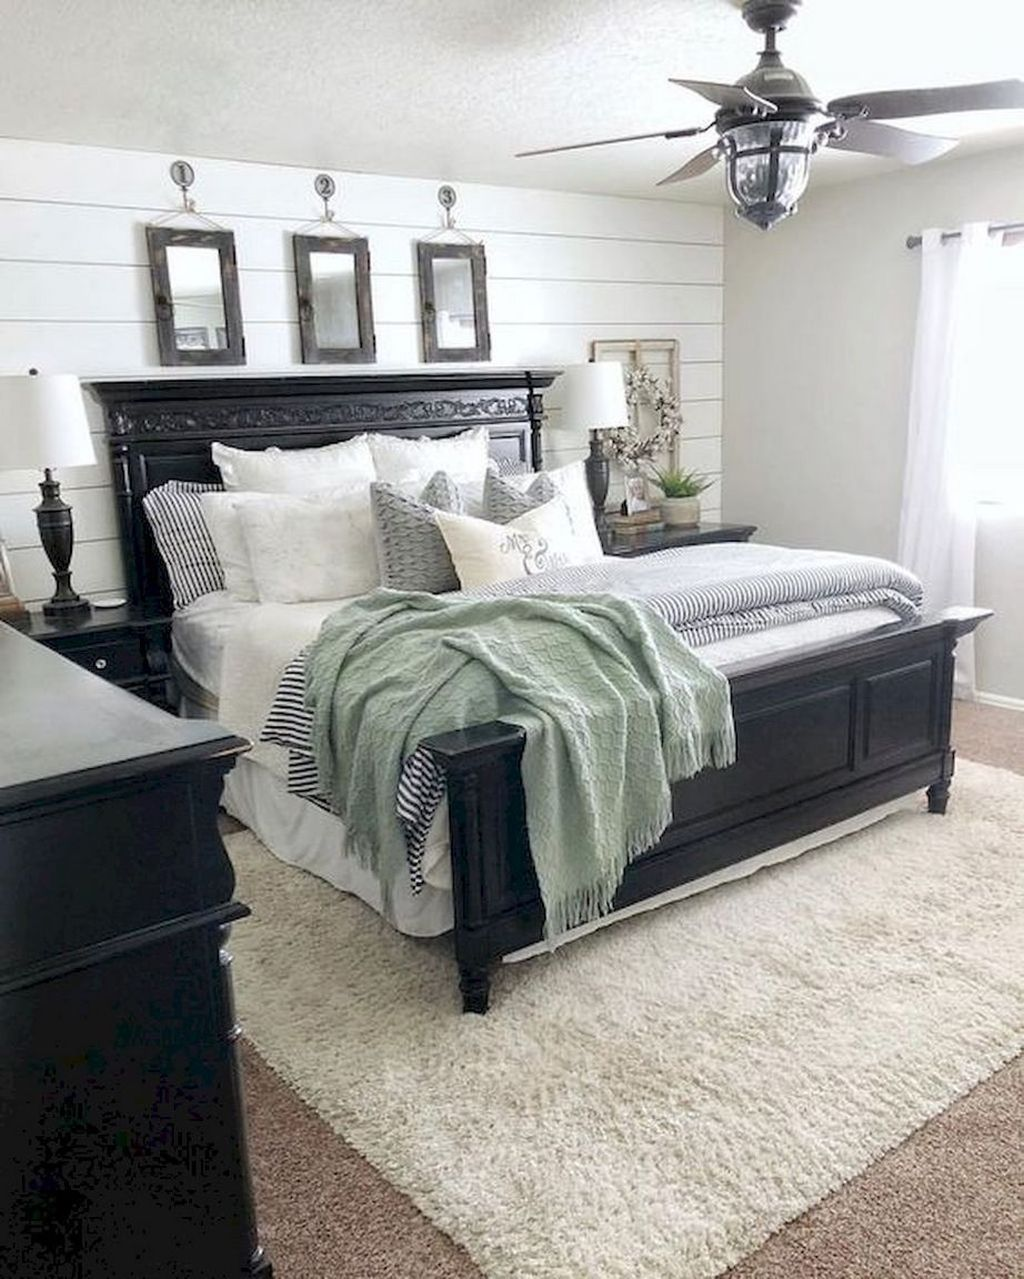 Rustic Bedroom Ideas If You Want To Go To Sleep In Rustic Posh After That This Article Is Rustic Master Bedroom Remodel Bedroom Farmhouse Style Bedroom Decor